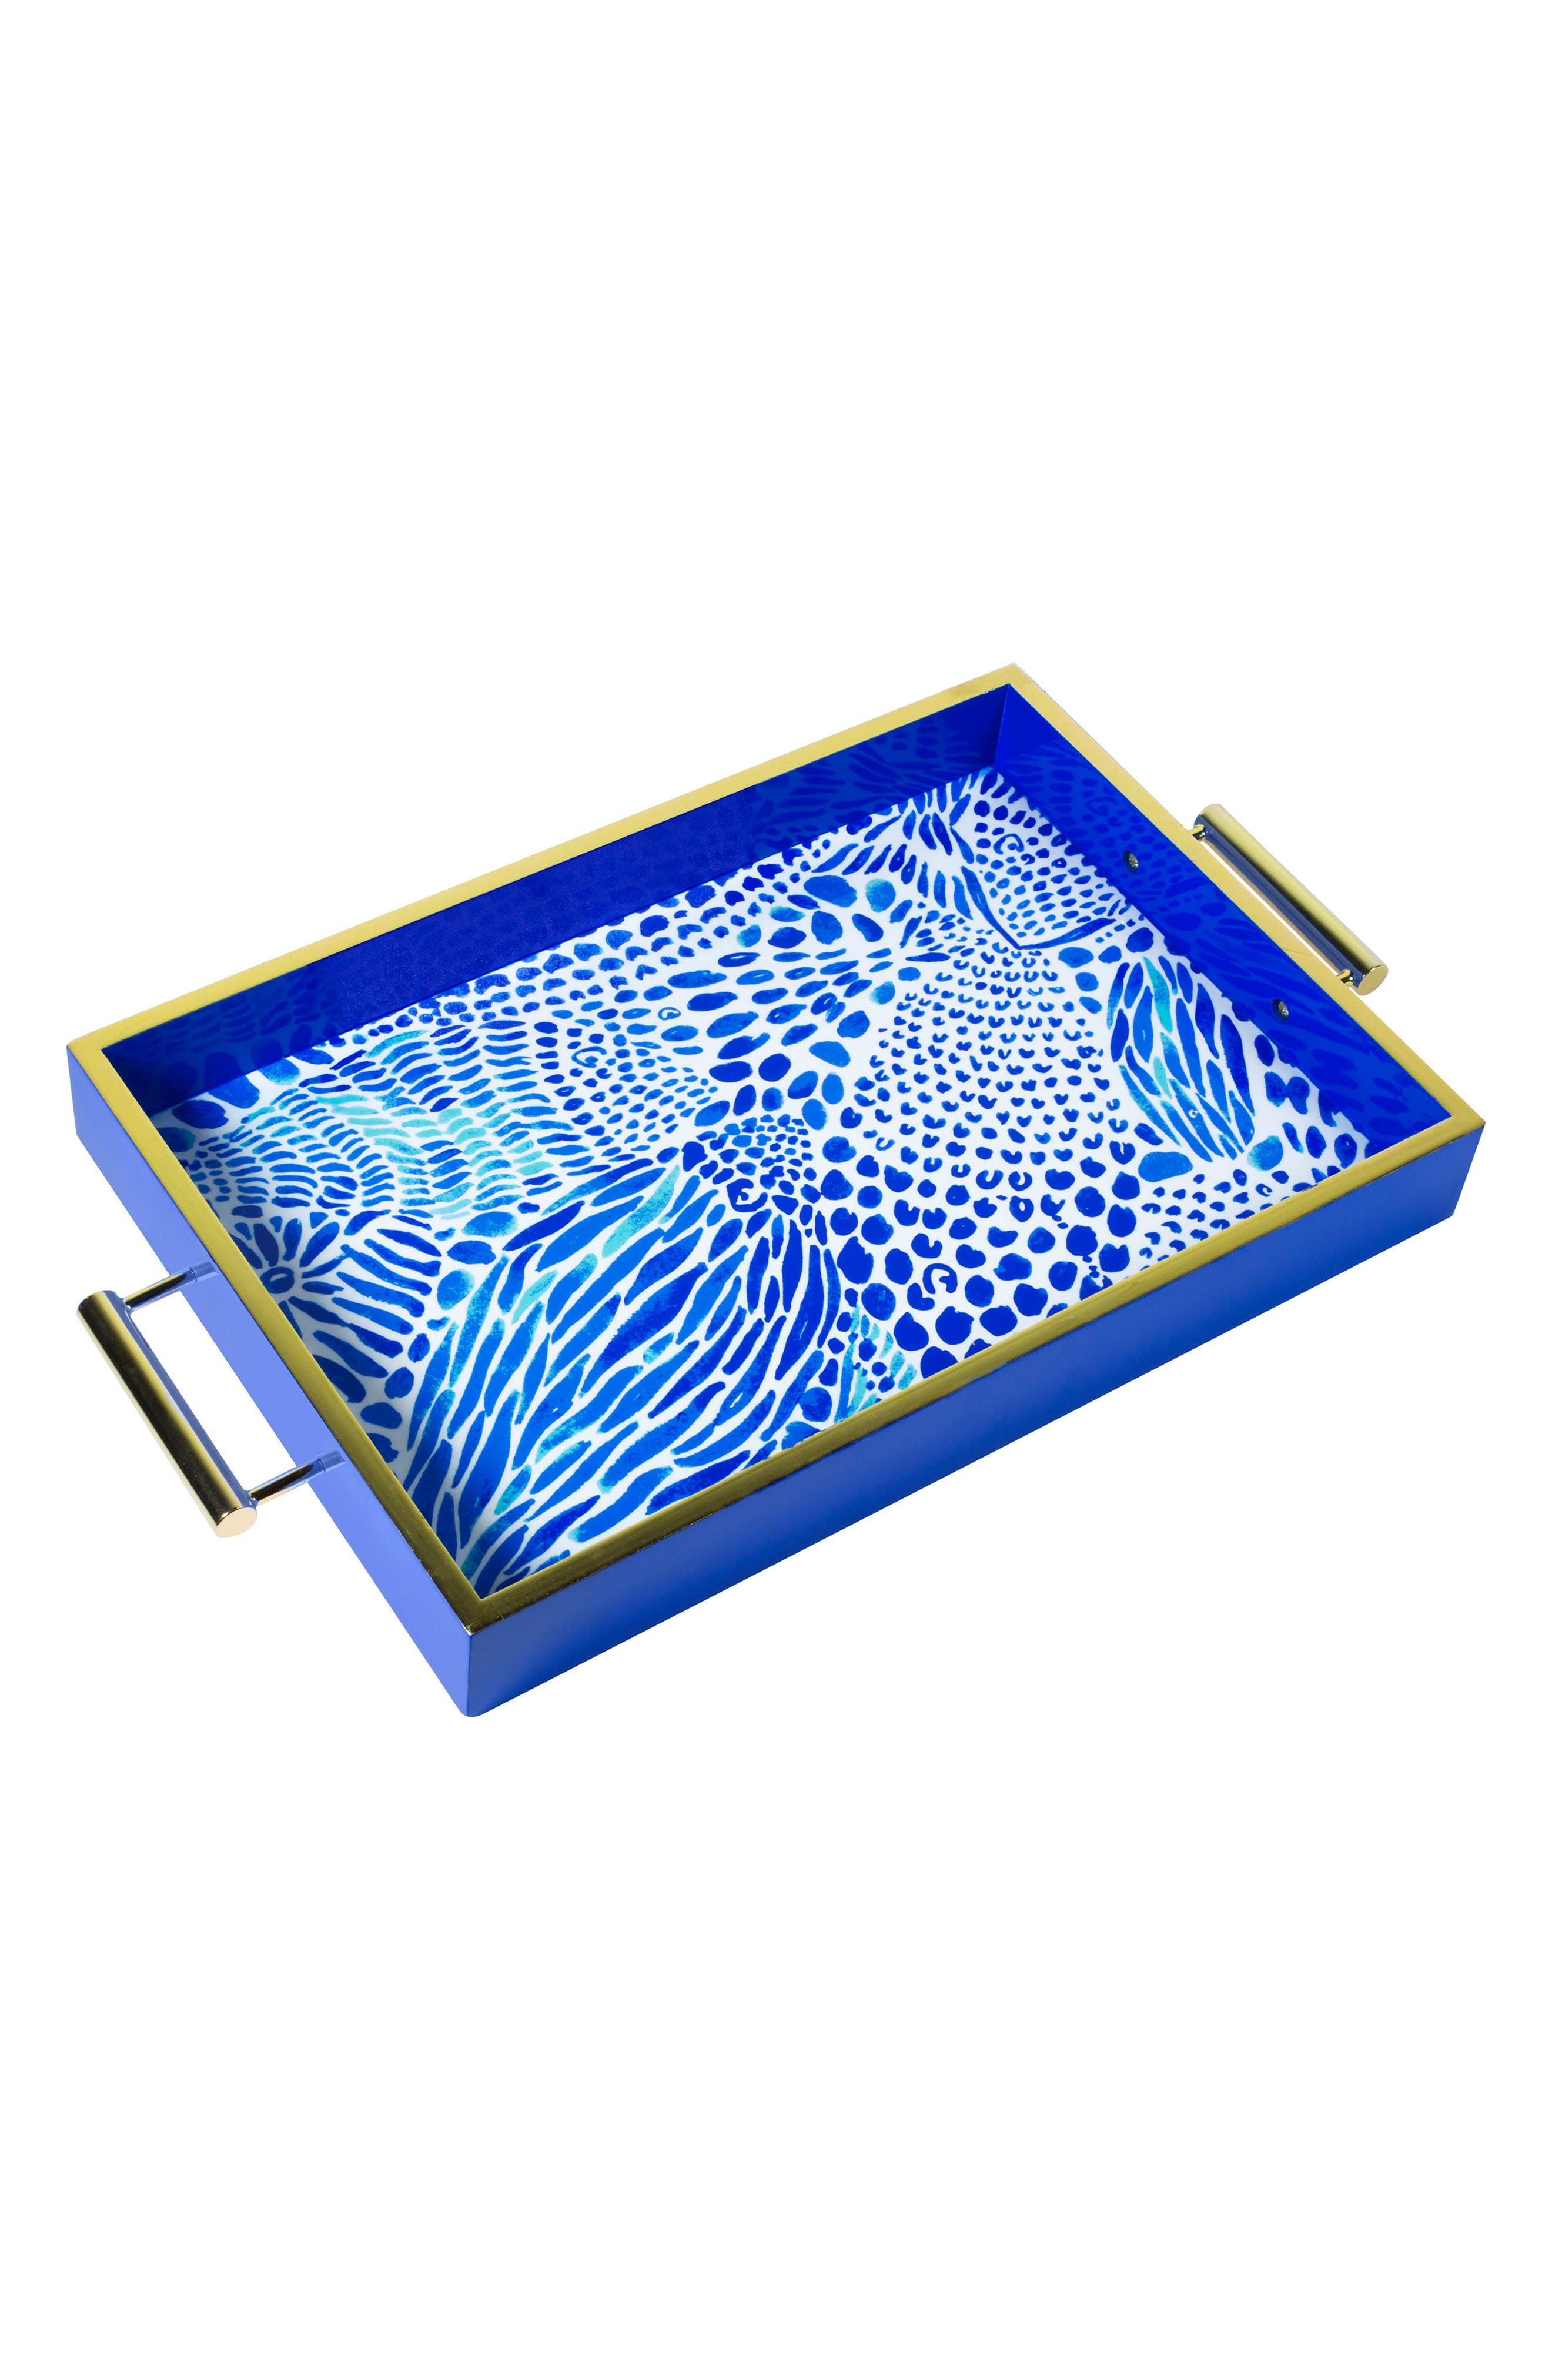 Alternate Image 1 Selected - Lilly Pulitzer® Hostess Tray